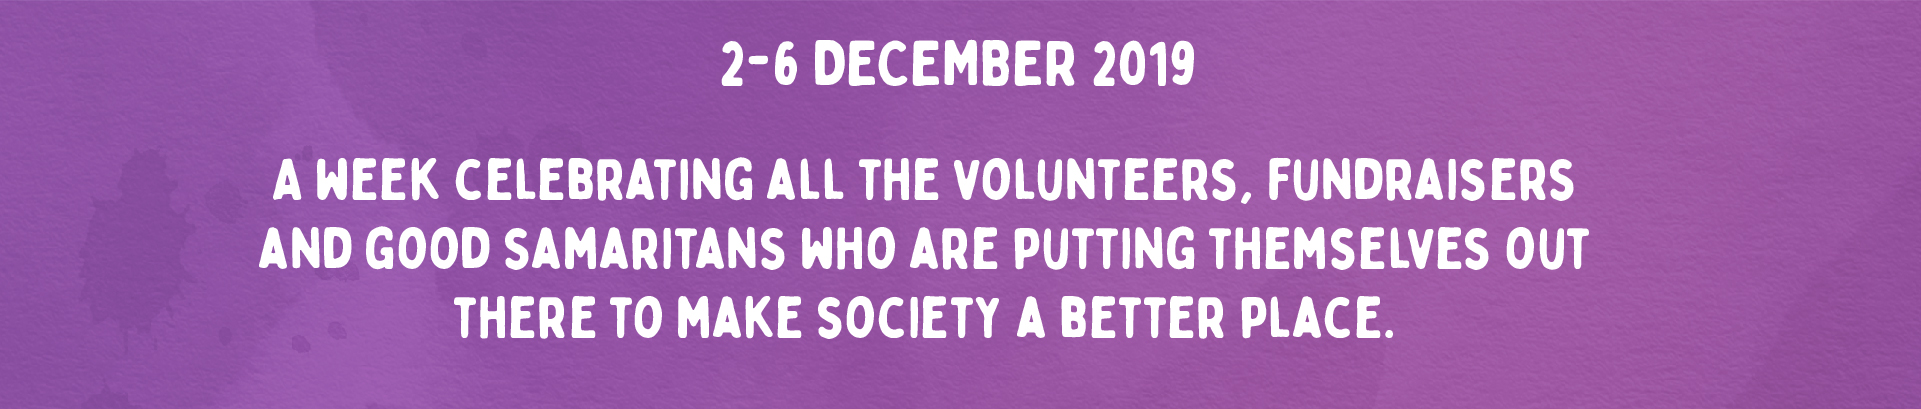 2-6 December 2019. A week celebrating all the volunteers, fundraisers and good samaritans who are putting themselves out there to make society a better place.